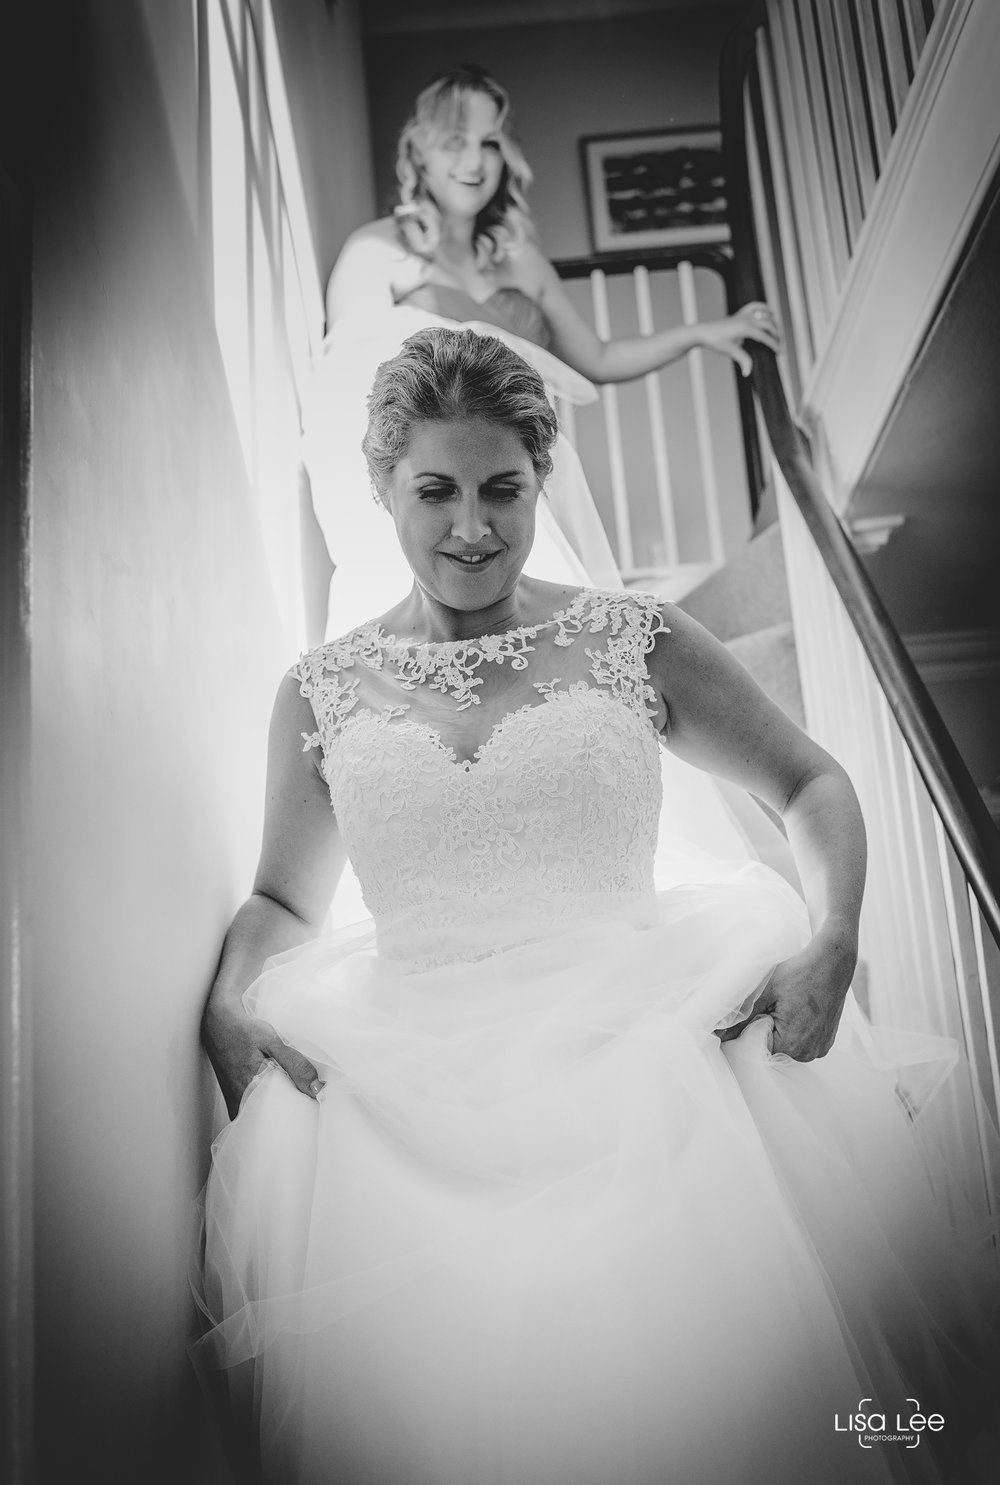 Lisa-Lee-Documentary-Wedding-Photography-Bournemouth-19.jpg